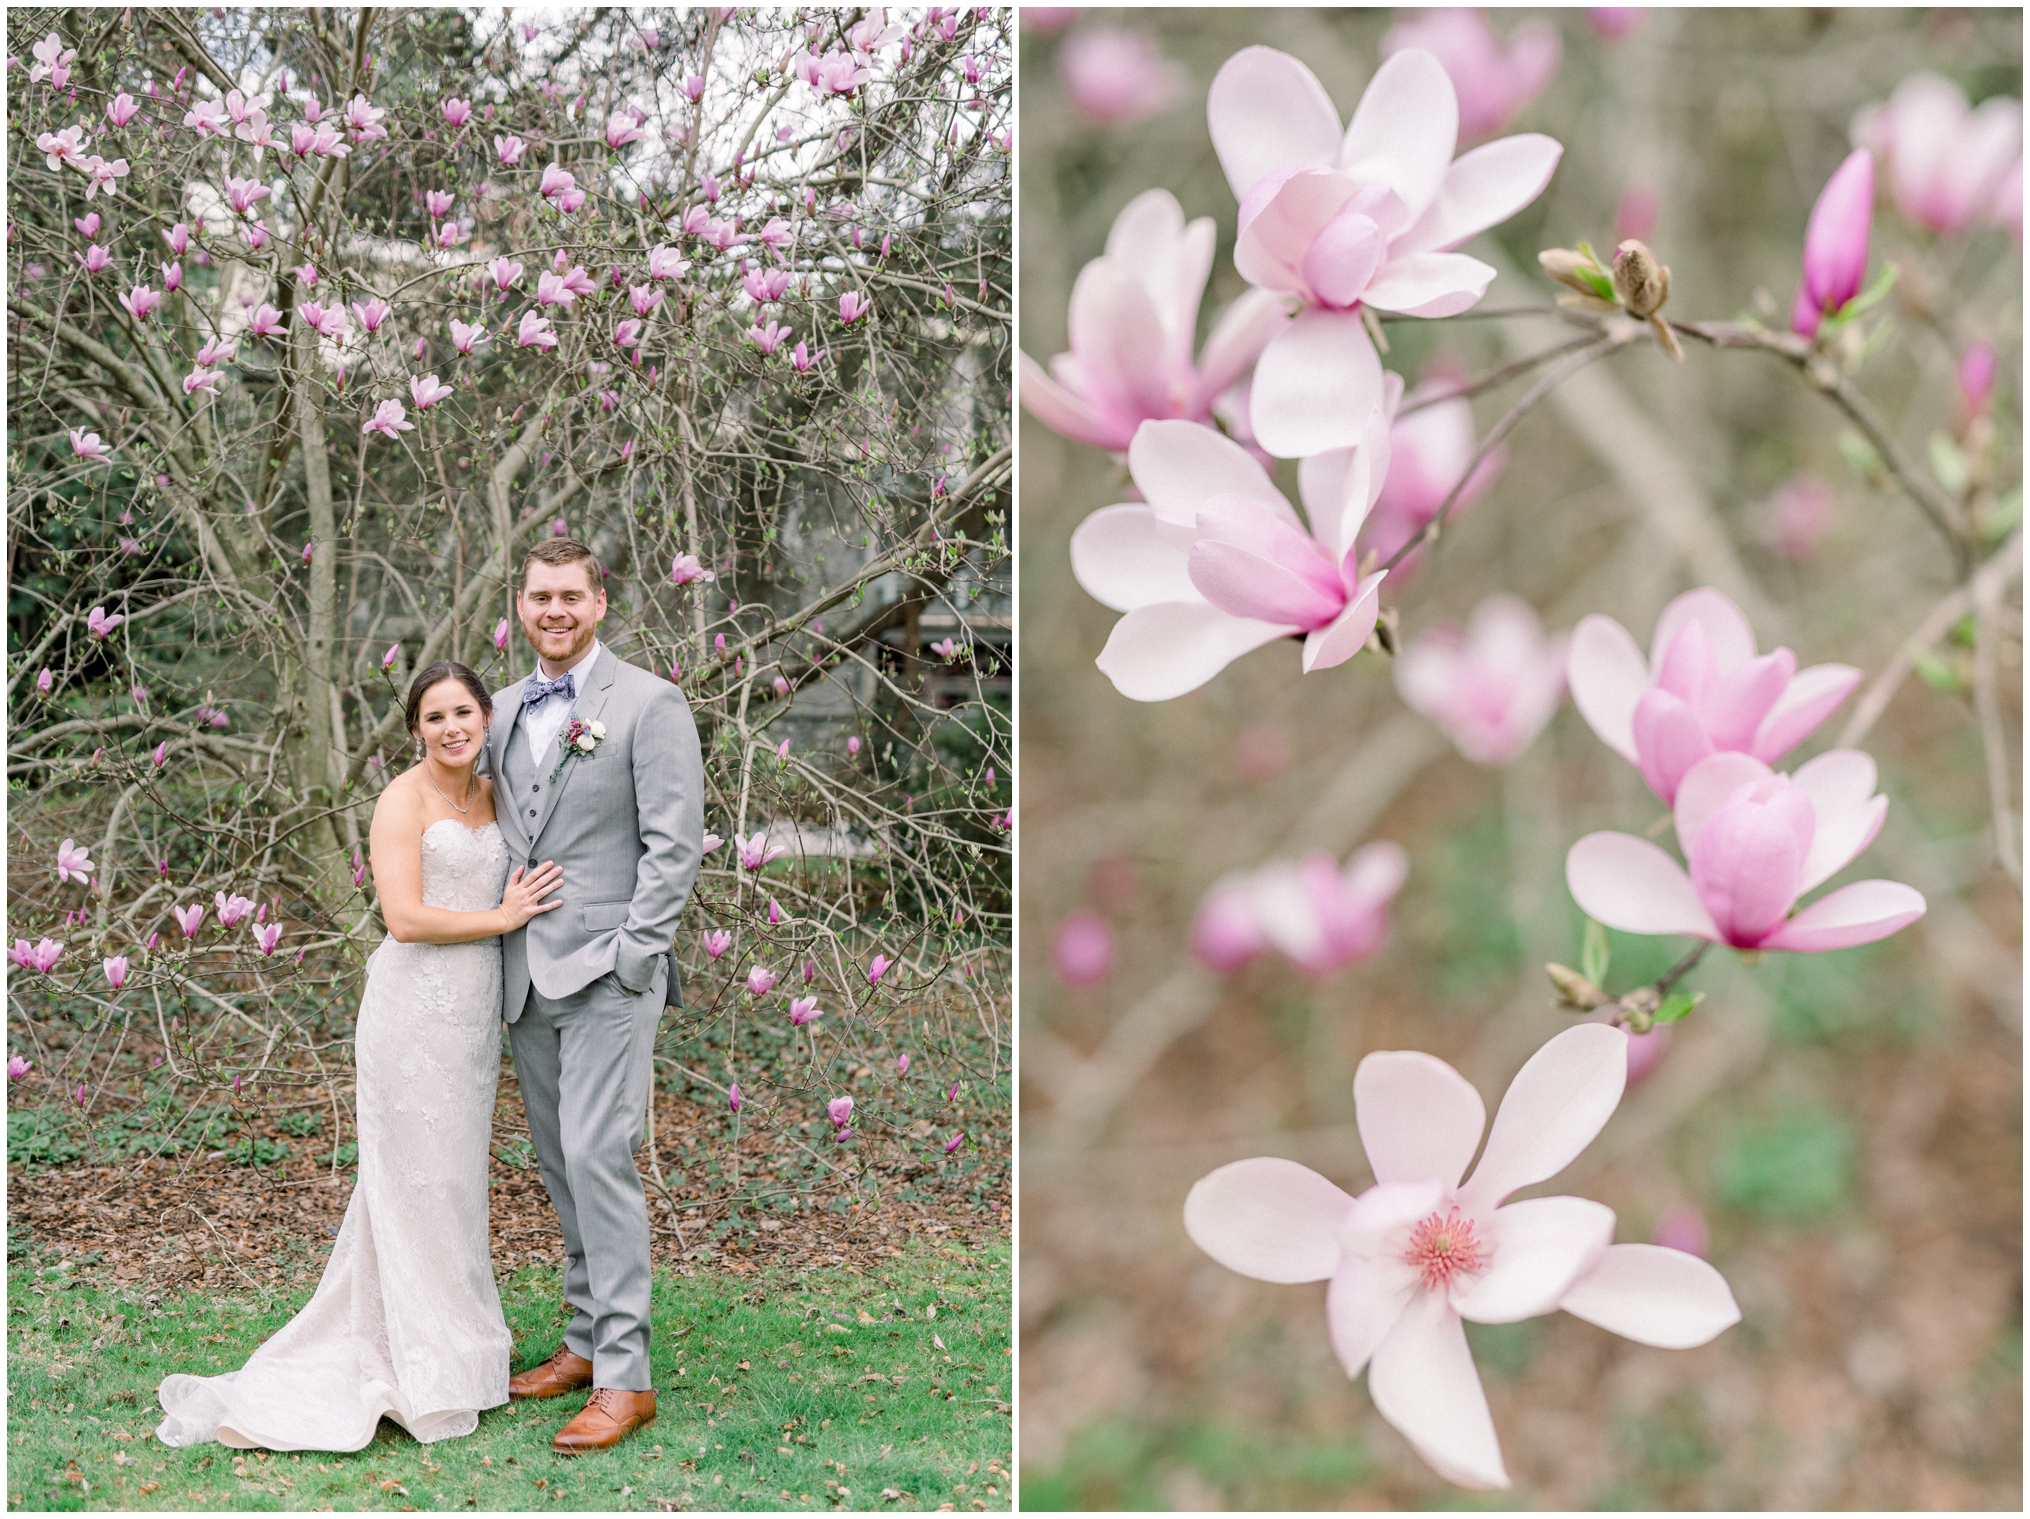 Krista Brackin Photography | April Wedding at The Carriage House at Rockwood Park_0087.jpg